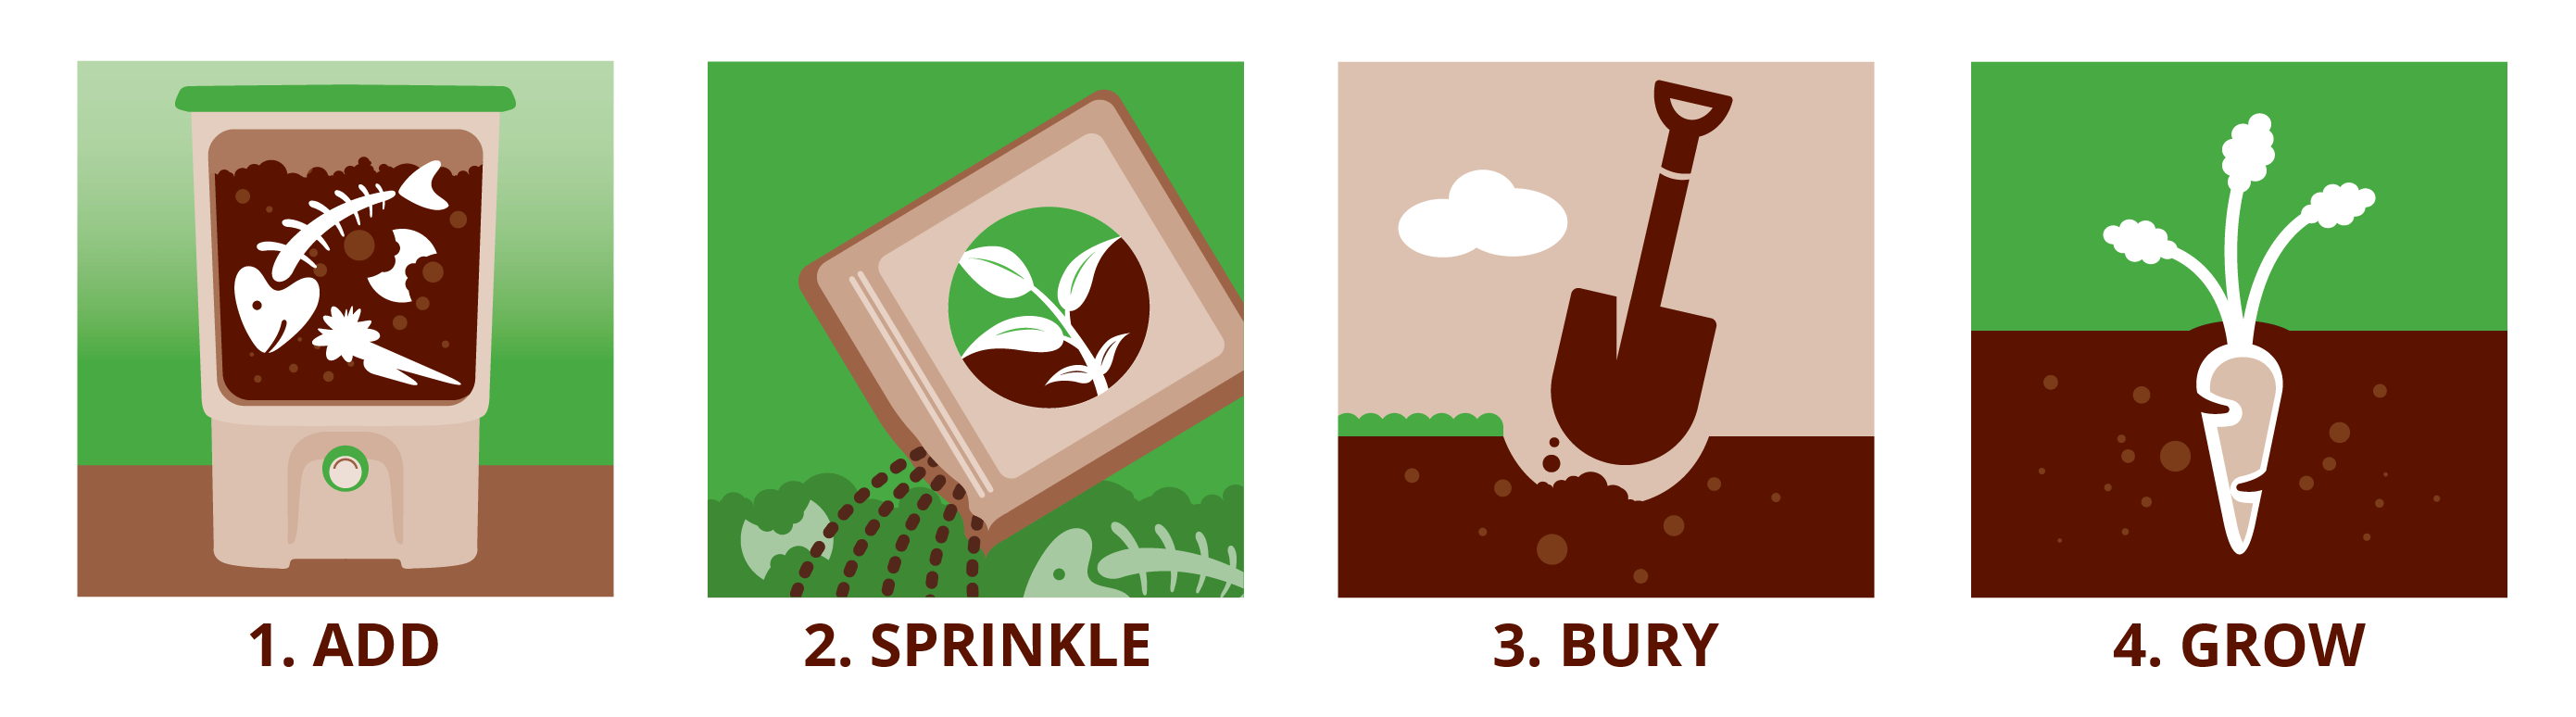 How to bokashi compost: 4 simple steps